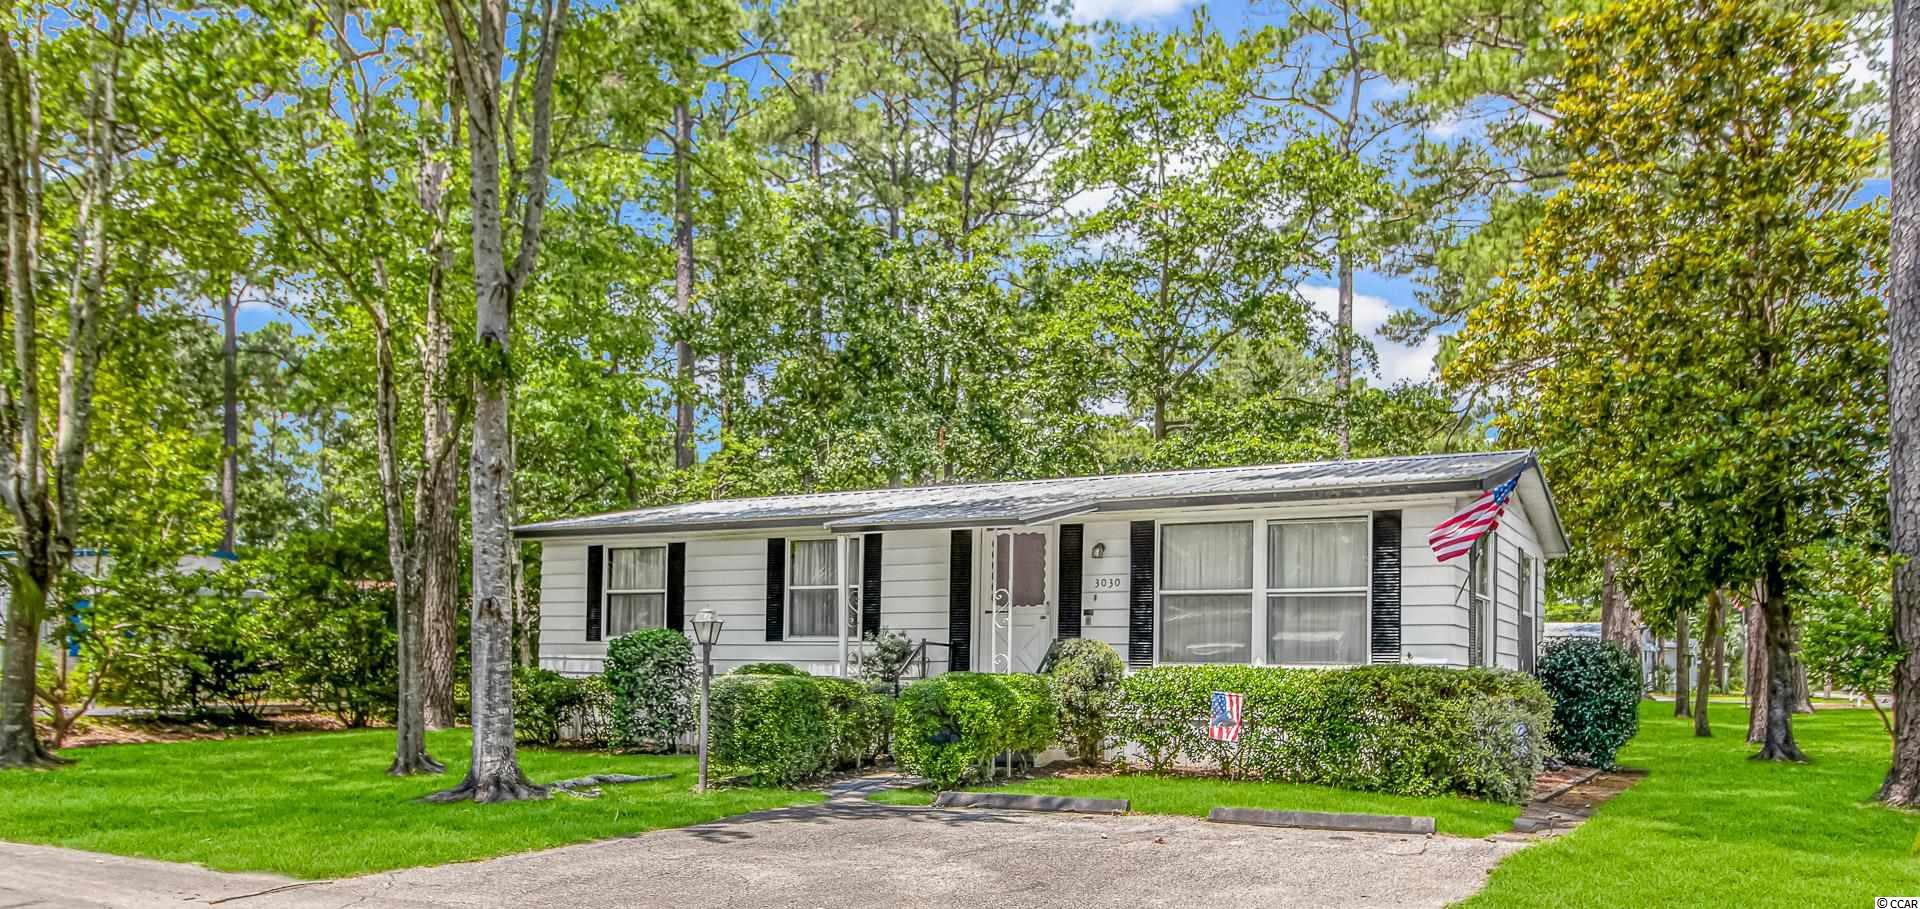 Open House Saturday July 3rd 12-2 Pm Do you want to live 1.5 Miles From the Beach? Then this is the perfect home for you. Hop in your golf cart and enjoy the Garden City Pier and Beach everyday. 2 Bedrooms 2 Baths New Roof 2020, 2 New Bathrooms in 2018 and all new piping. New Kitchen top to bottom 2019 Featuring a Gas Stove,  Take a walk or bike ride through the landscaped grounds dotted with towering pines and lush magnolia trees orBeat the summer heat with a few laps in one of two swimming pools. Ocean Pines two clubhouses offer great opportunities to get to know your neighbors during organized activities and planned events. Play plenty of games including billiards, bocce ball, and horseshoes. Find your new favorite book in our community library